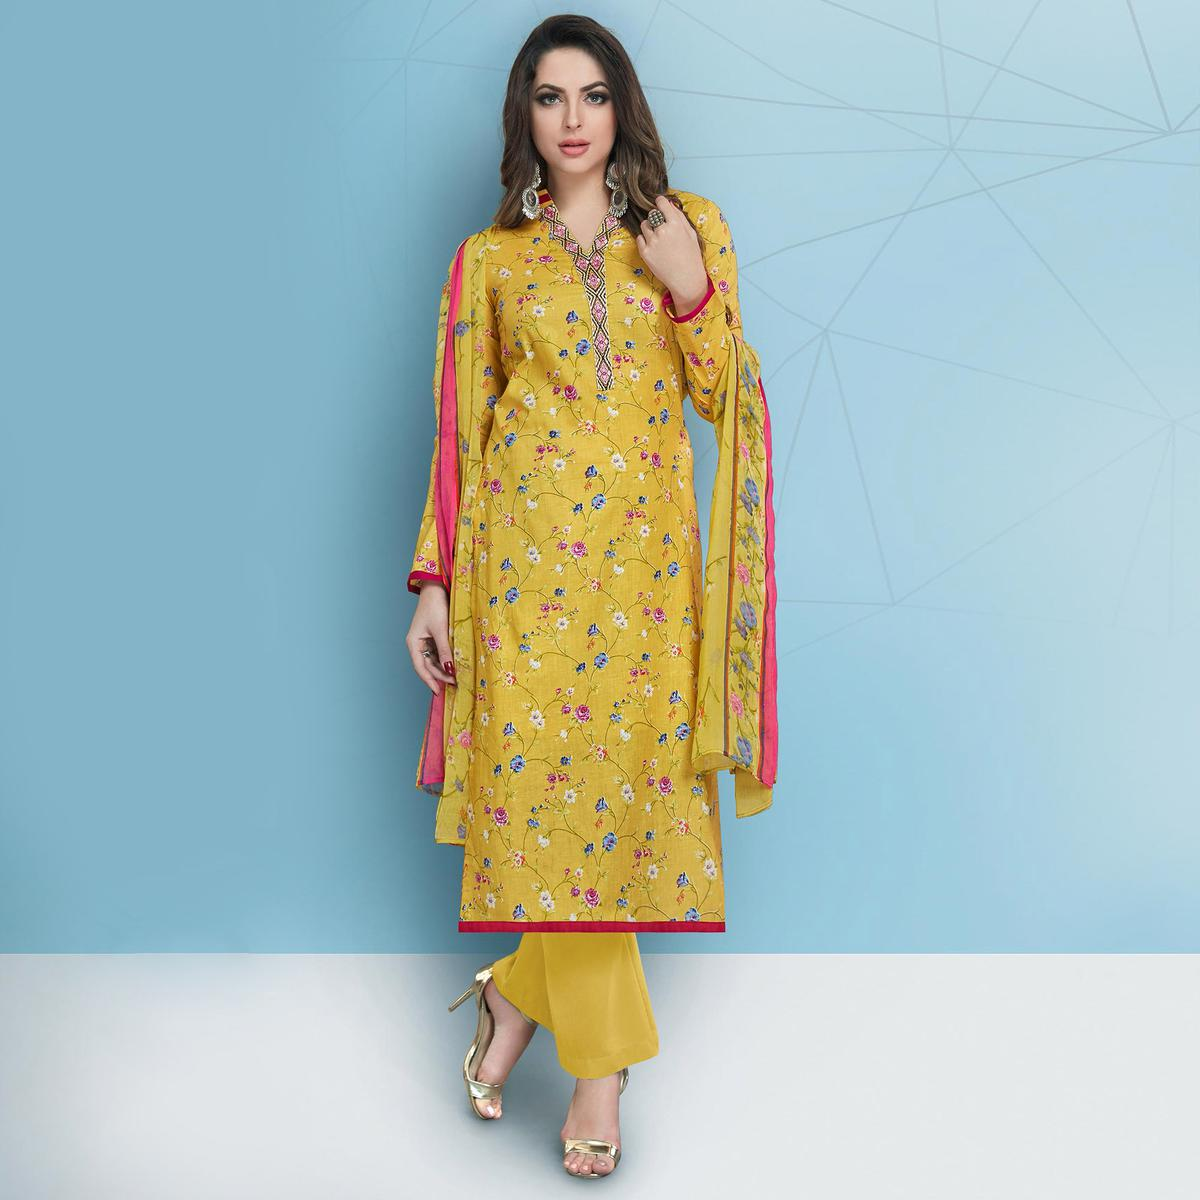 Classy Yellow Colored Casual Printed Cotton Suit